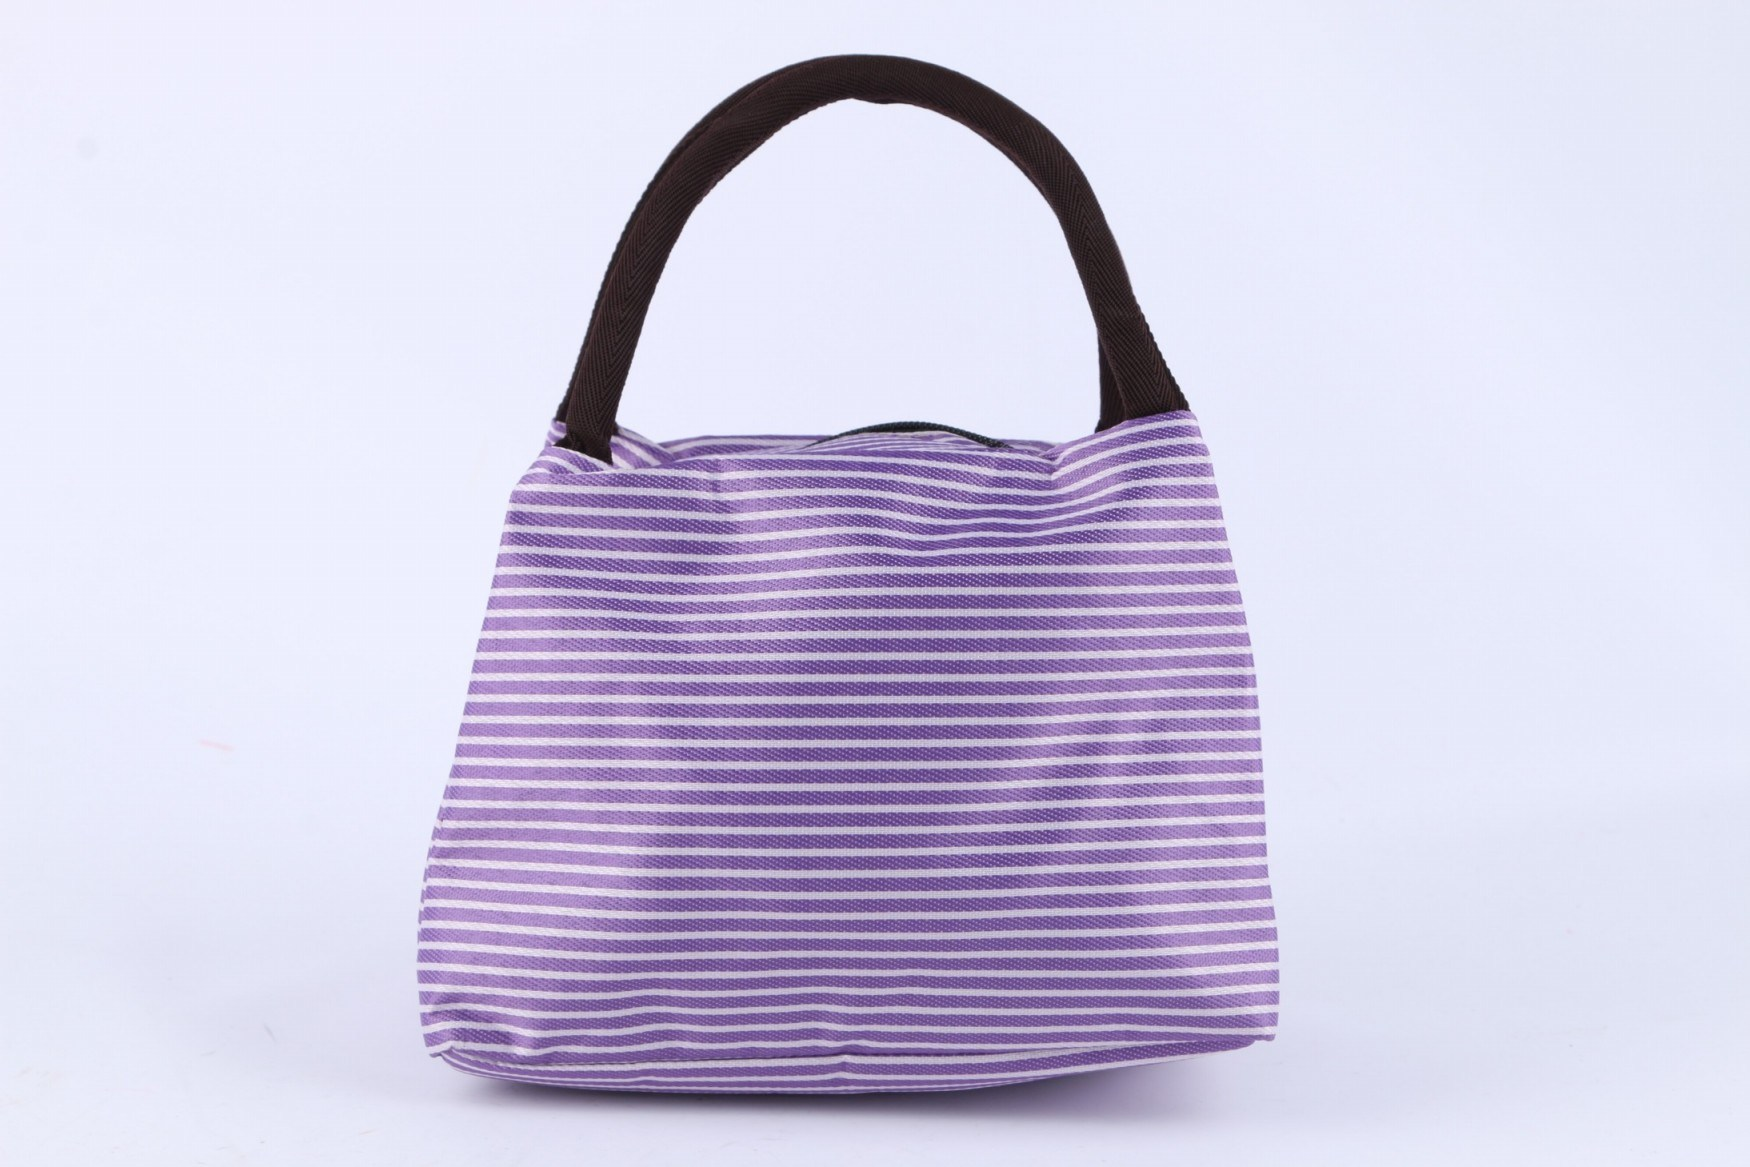 Promotional Factory Direct Sale Stripped Printed Lunch Bag Handbag Fashion